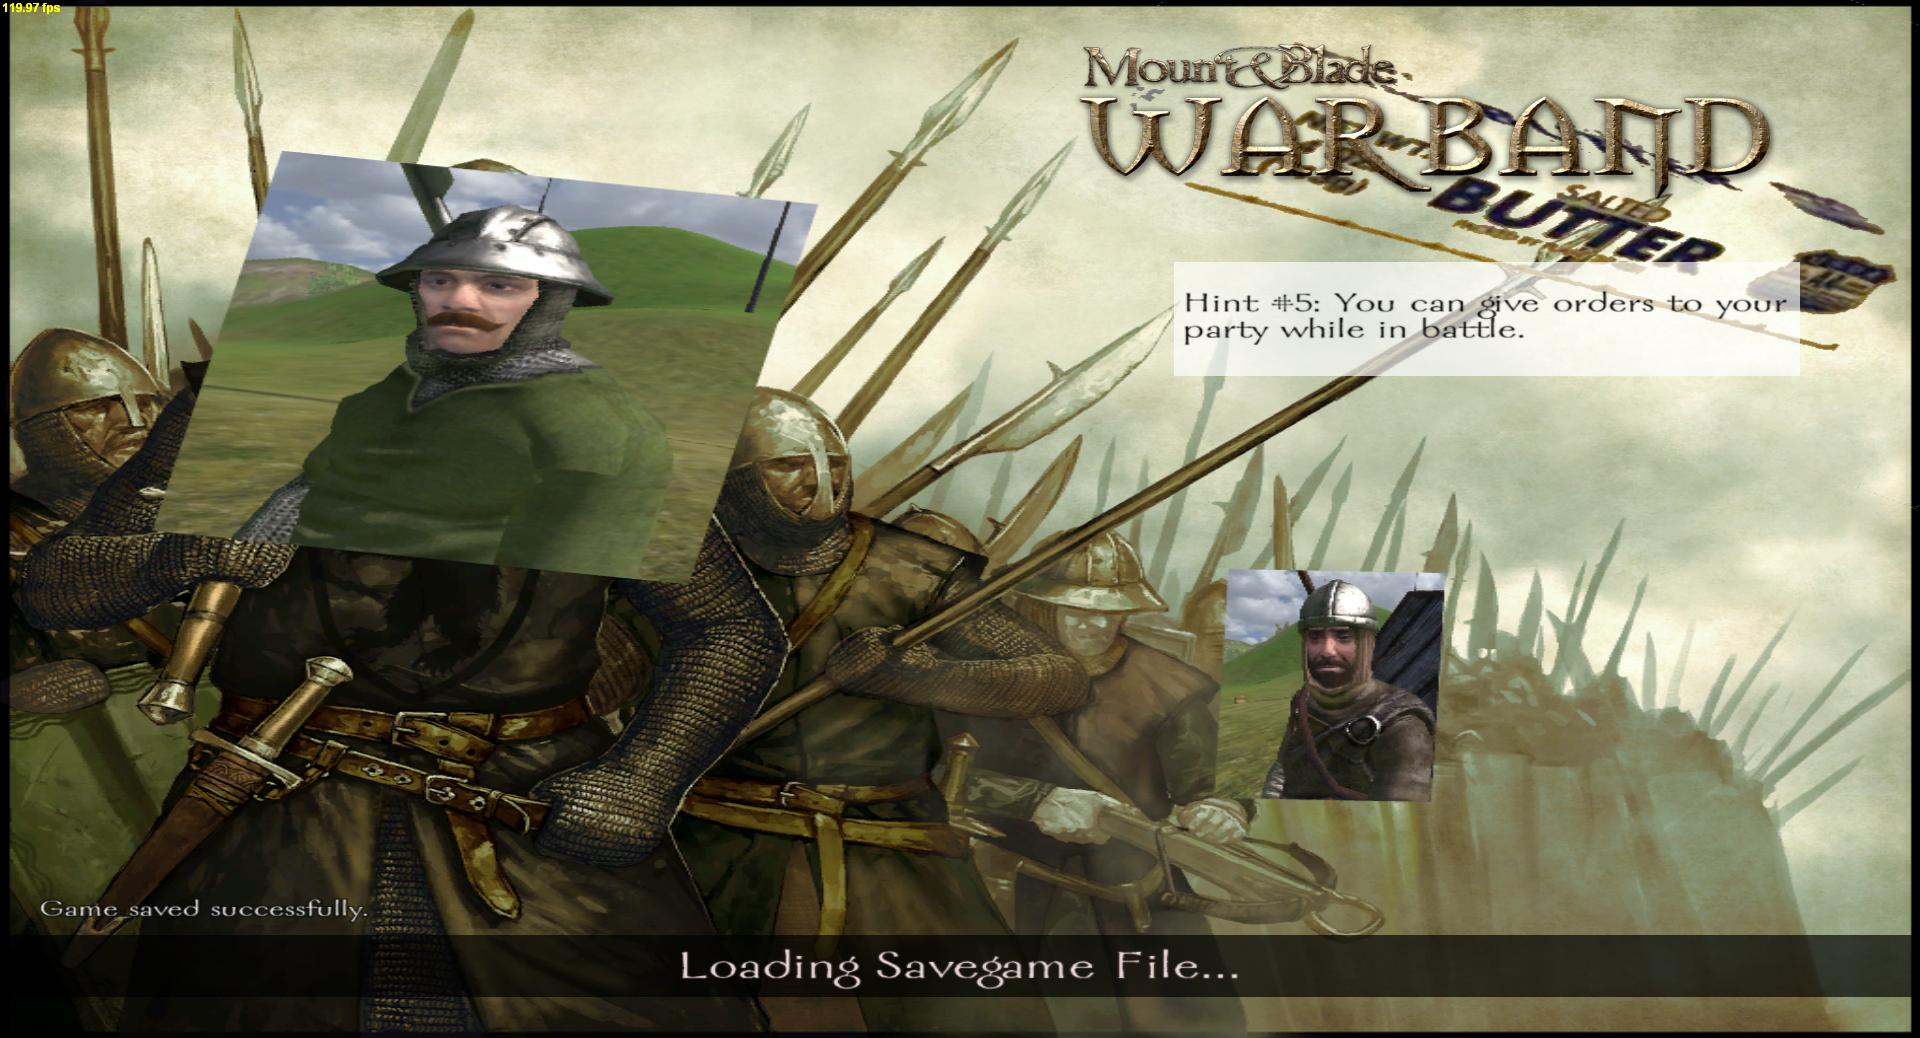 mb_warband_2016 02 23_17 52 23 3 butter and blade 2 checkerlord mod for mount & blade warband,Mount And Blade Memes